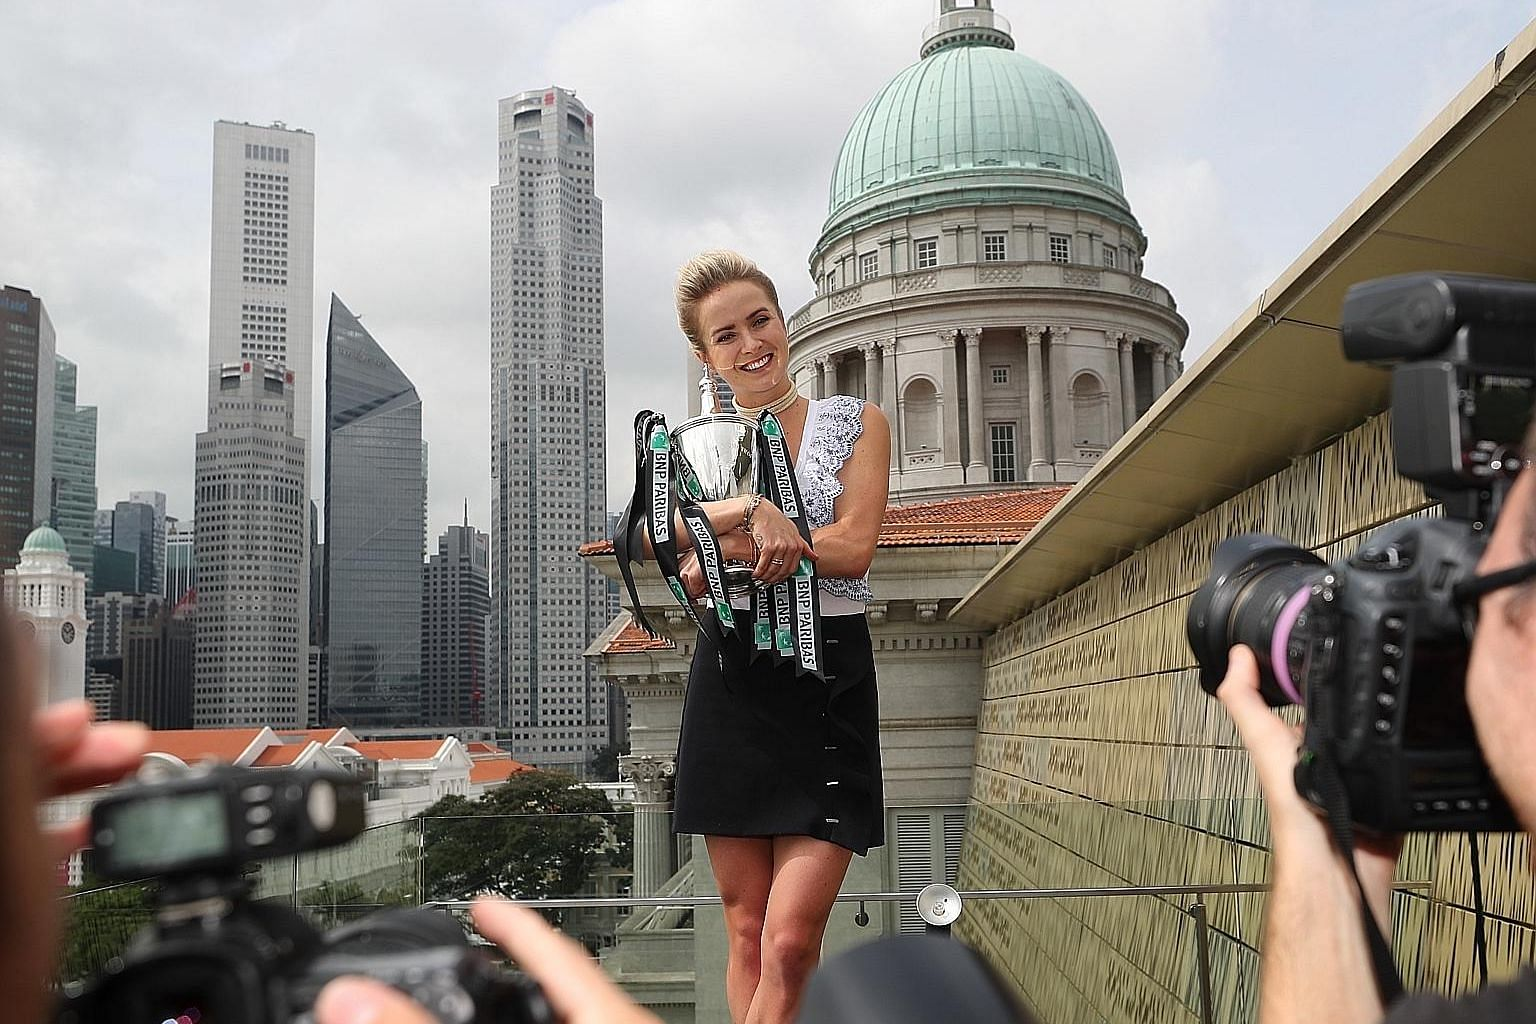 With her arms around the Billie Jean King Trophy, Elina Svitolina wraps up the fifth and final edition of the BNP Paribas WTA Finals Singapore presented by SC Global. A day after defeating American Sloane Stephens 3-6, 6-2, 6-2 in the final on Sunday